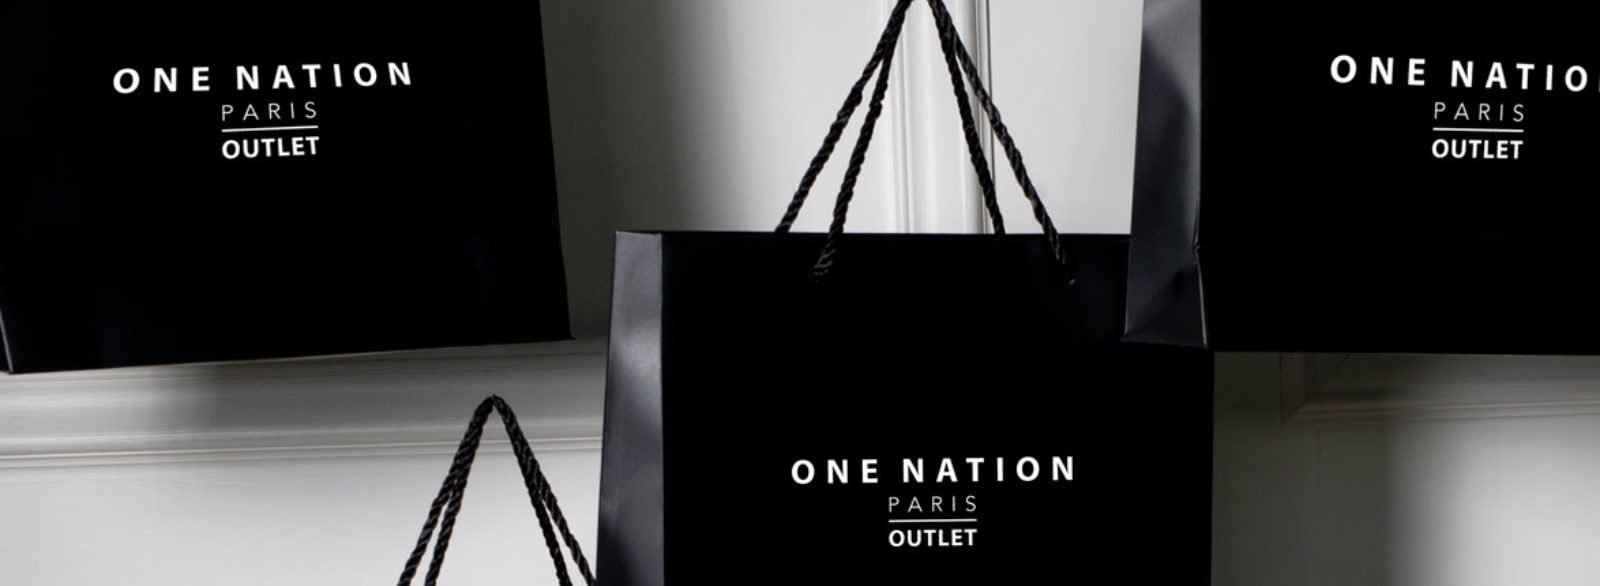 Lifestyle outlet, fashion outlet: One Nation Paris